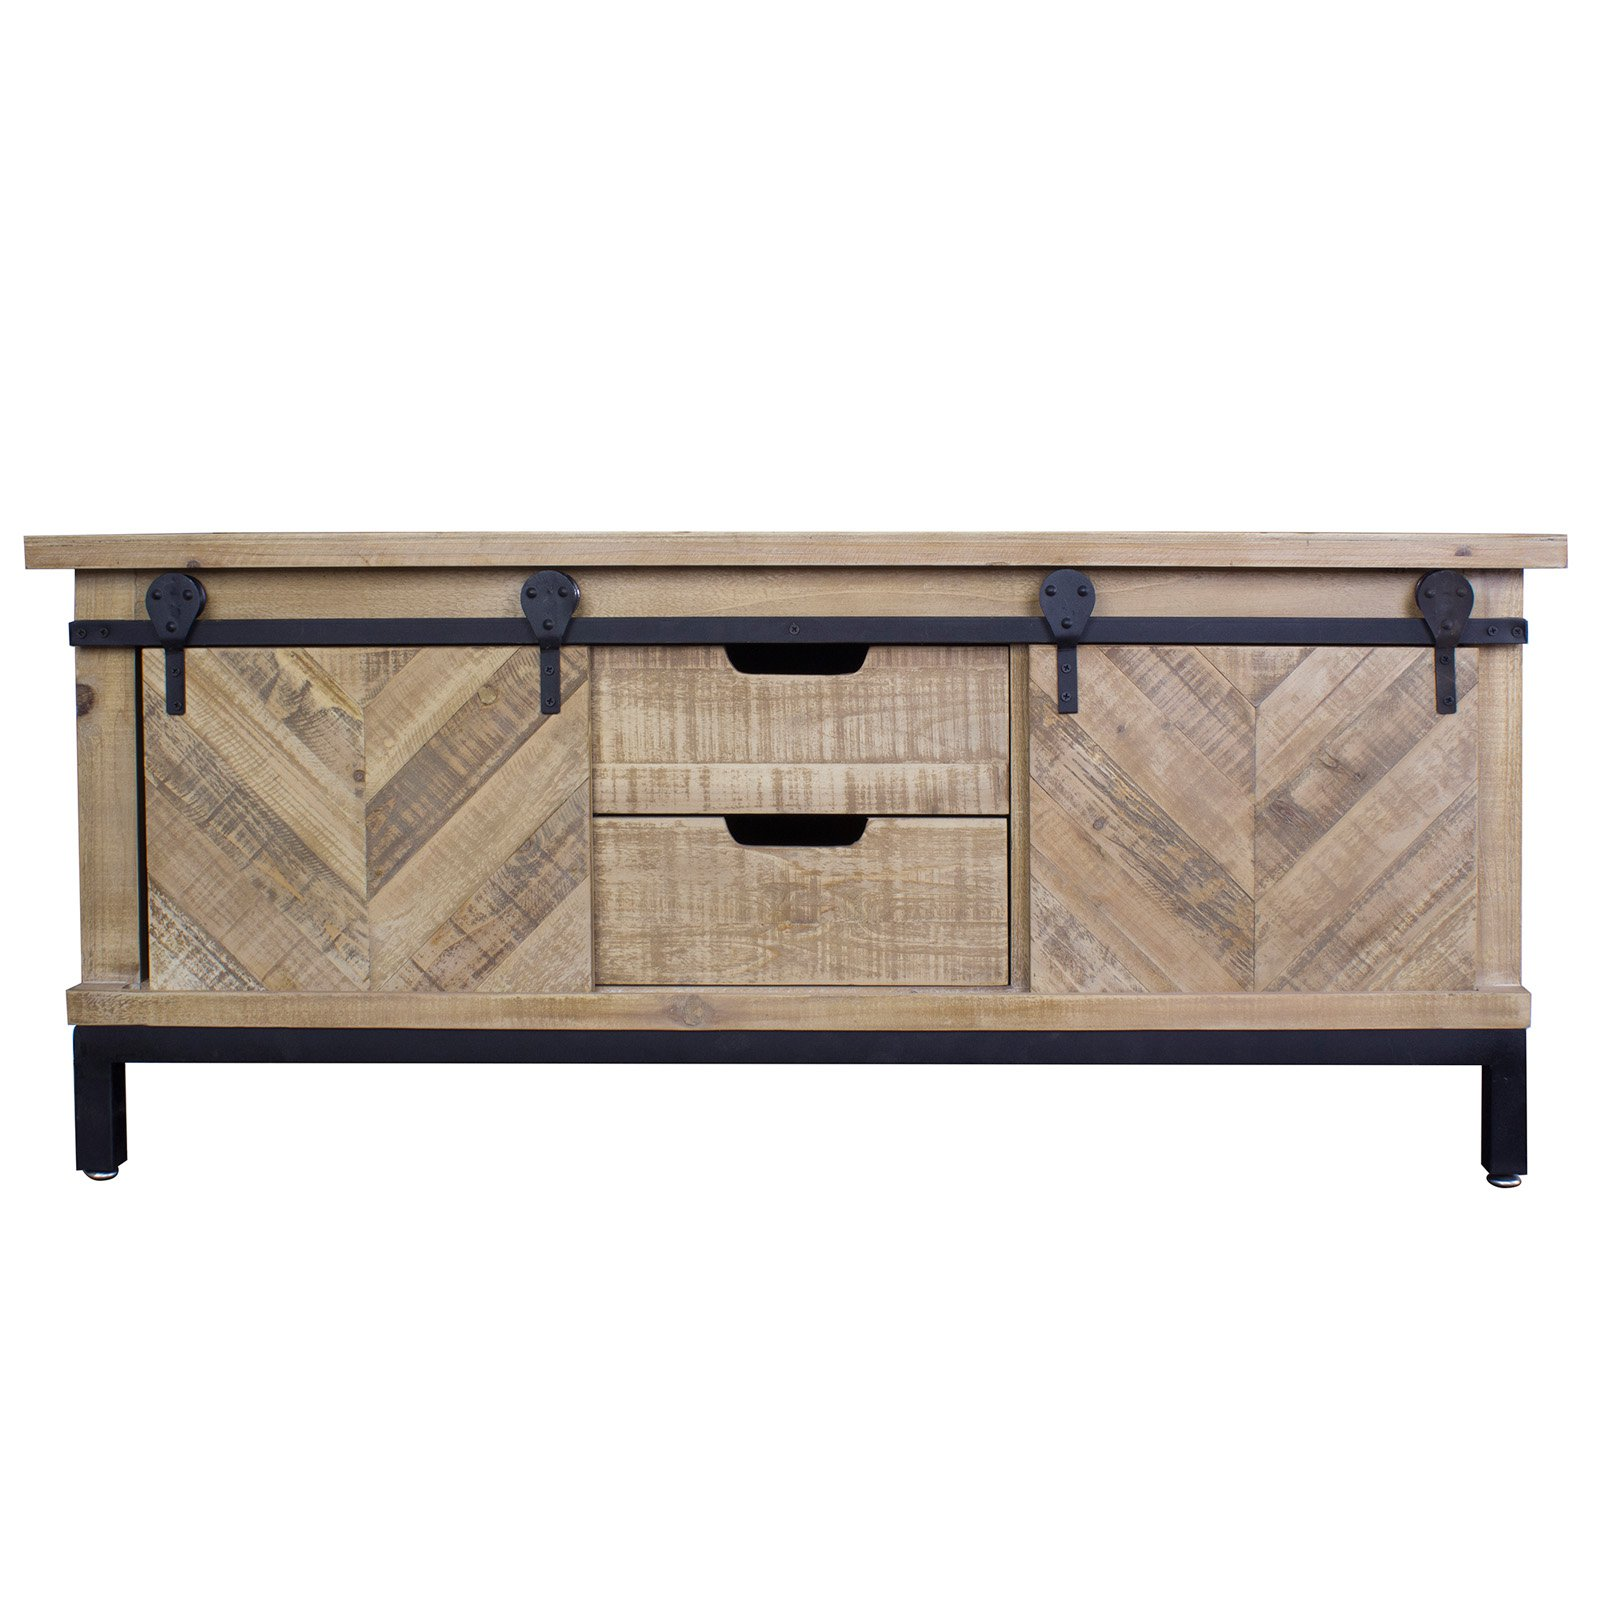 Heather Ann Creations Knightsbridge Collection Buffet Cabinet